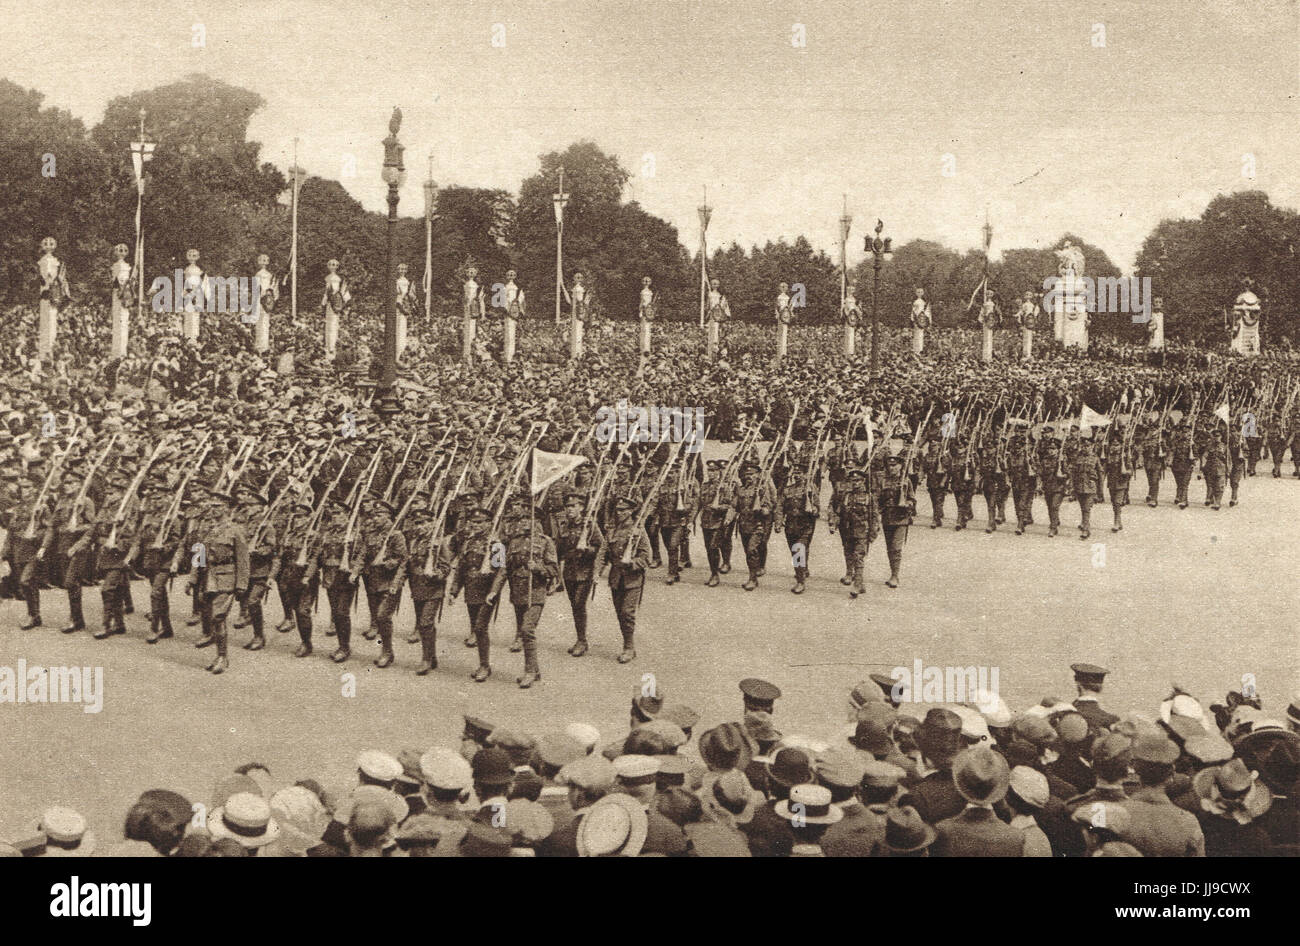 Victory parade Southern Command infantry, 1919 - Stock Image